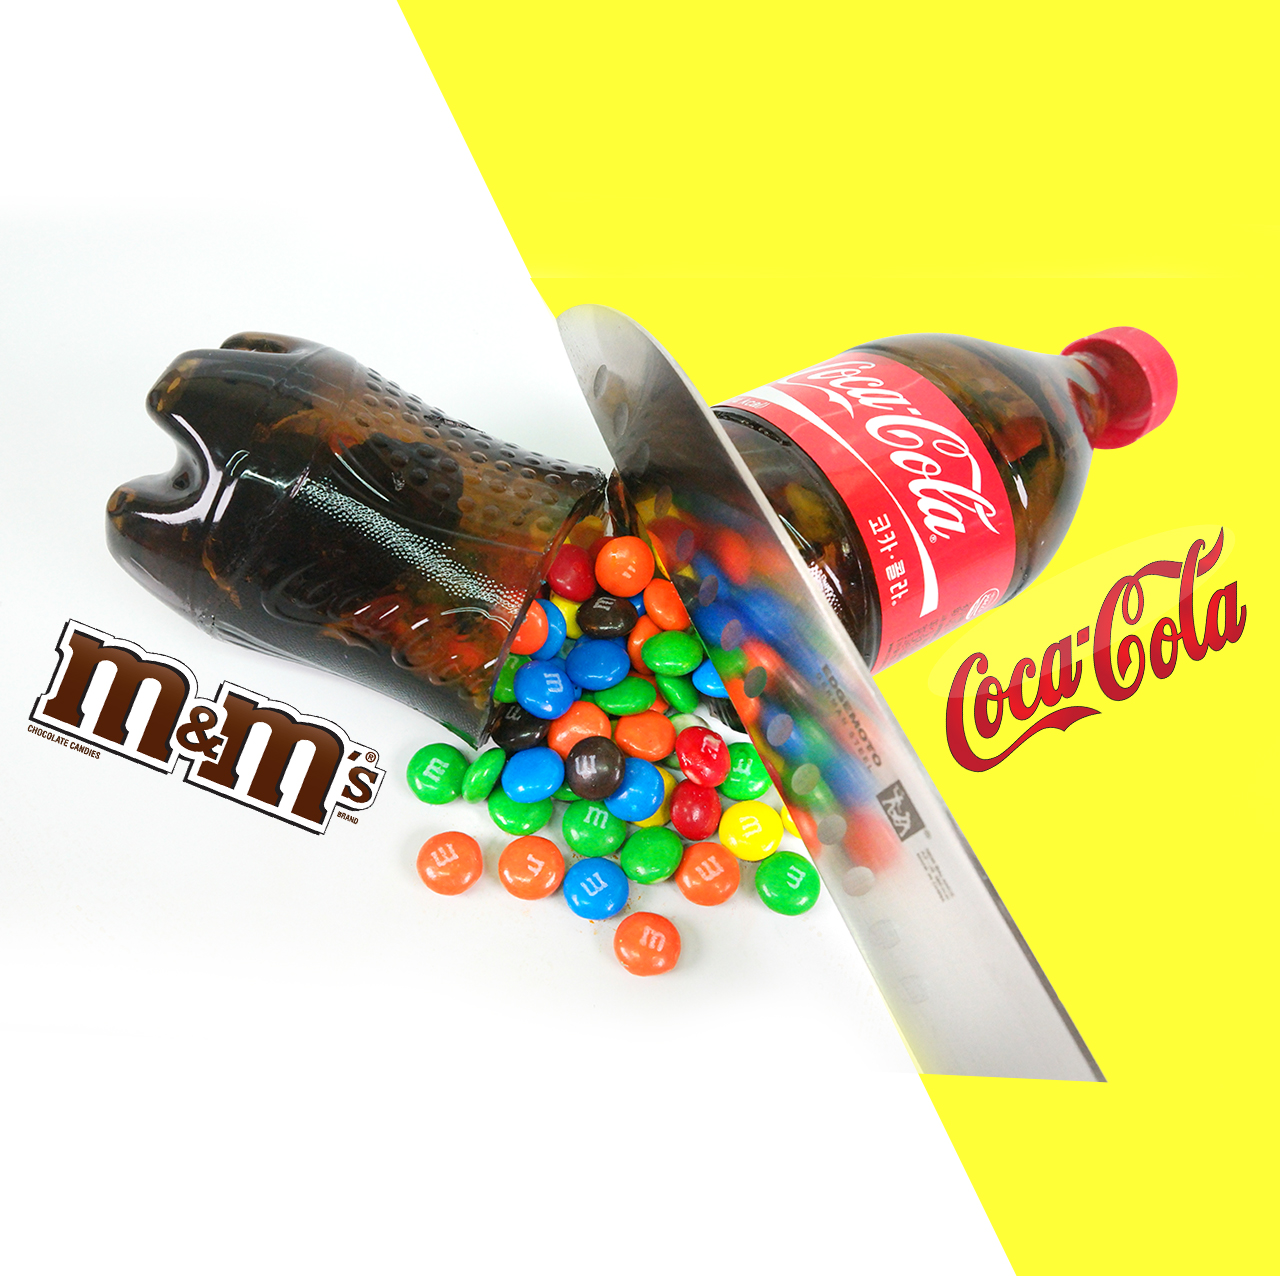 Picture of DIY Coca Cola Bottle Shape Gummy Jelly Dessert & M&M's Chocolate